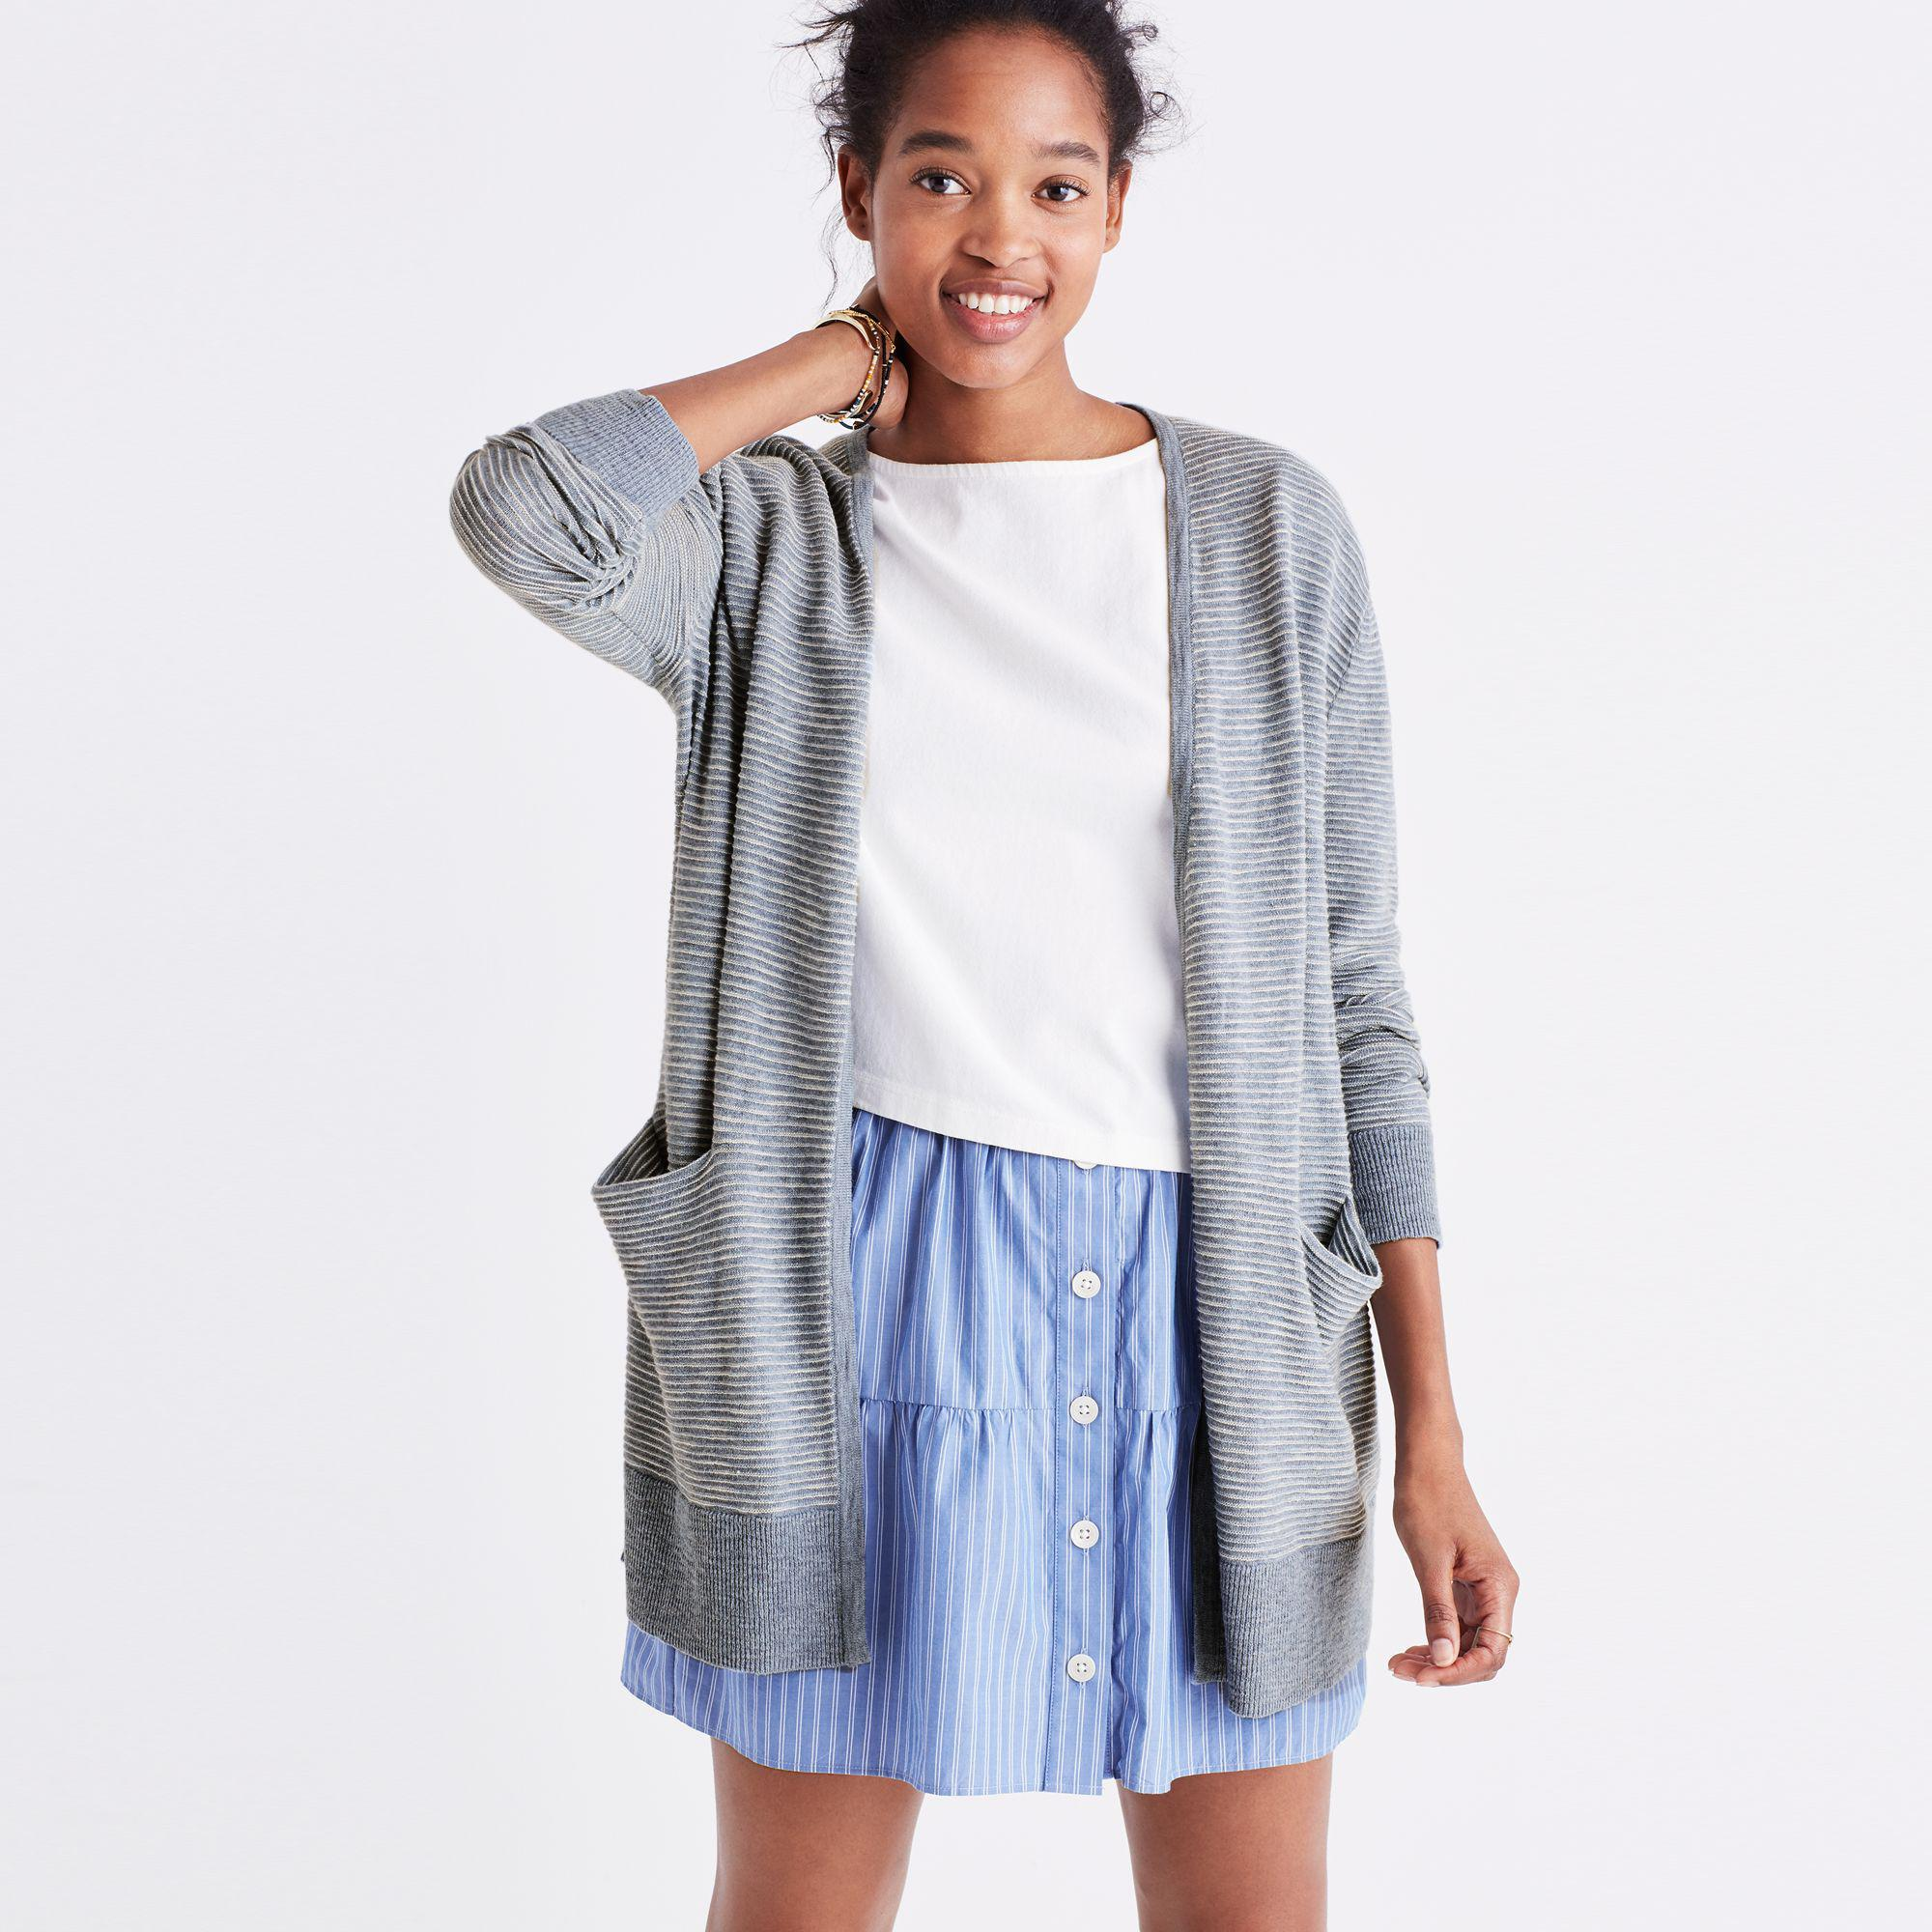 ec82ce1a76 Lyst - Madewell Summer Ryder Cardigan Sweater In Stripe in Blue